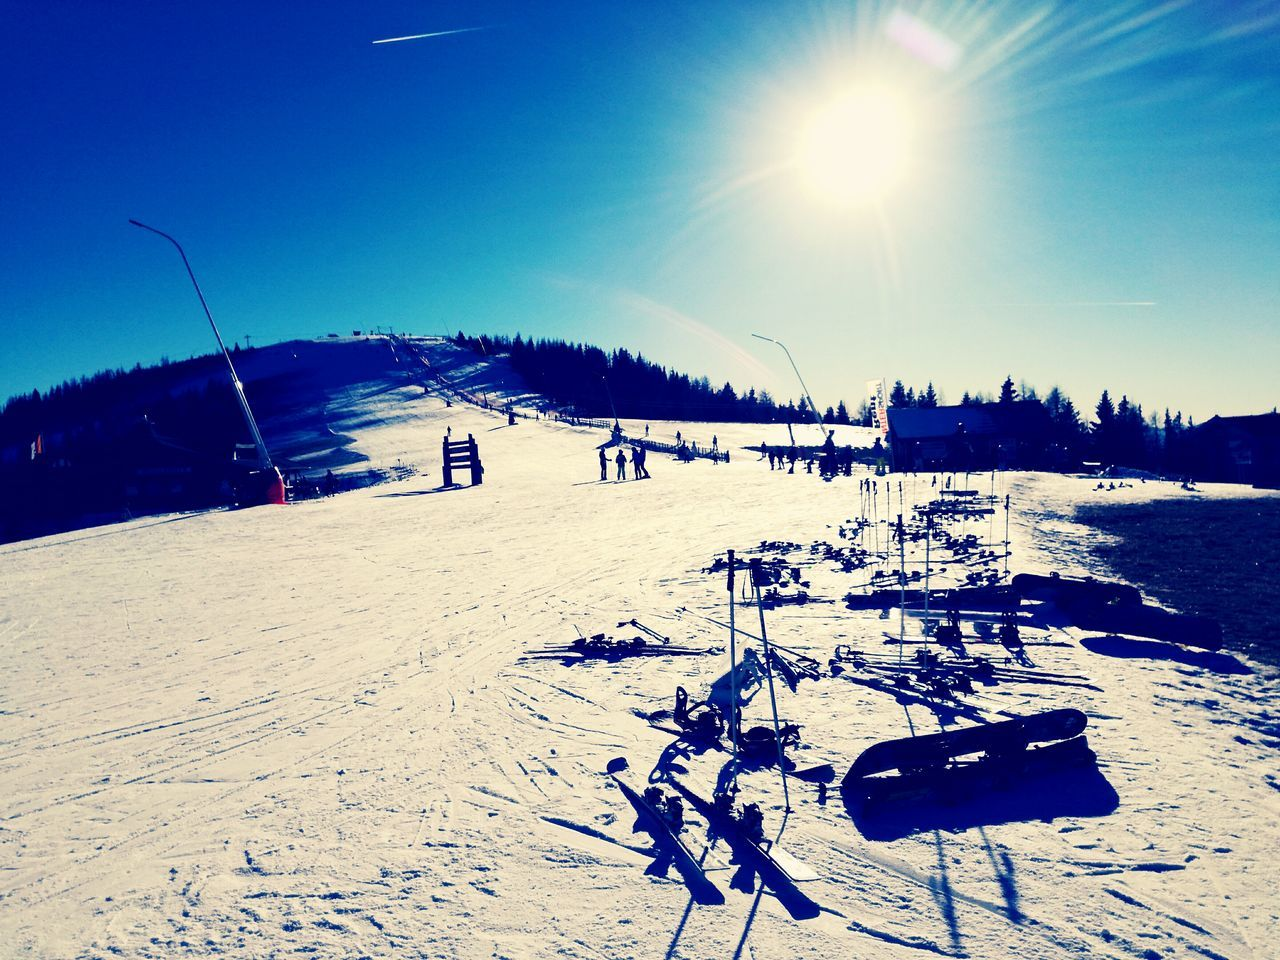 Snow Sports Sunlight Nature Outdoors Leisure Activity Clear Sky Sky Relax Time  Winter Lonely Objects Ski skiing skiing equipment